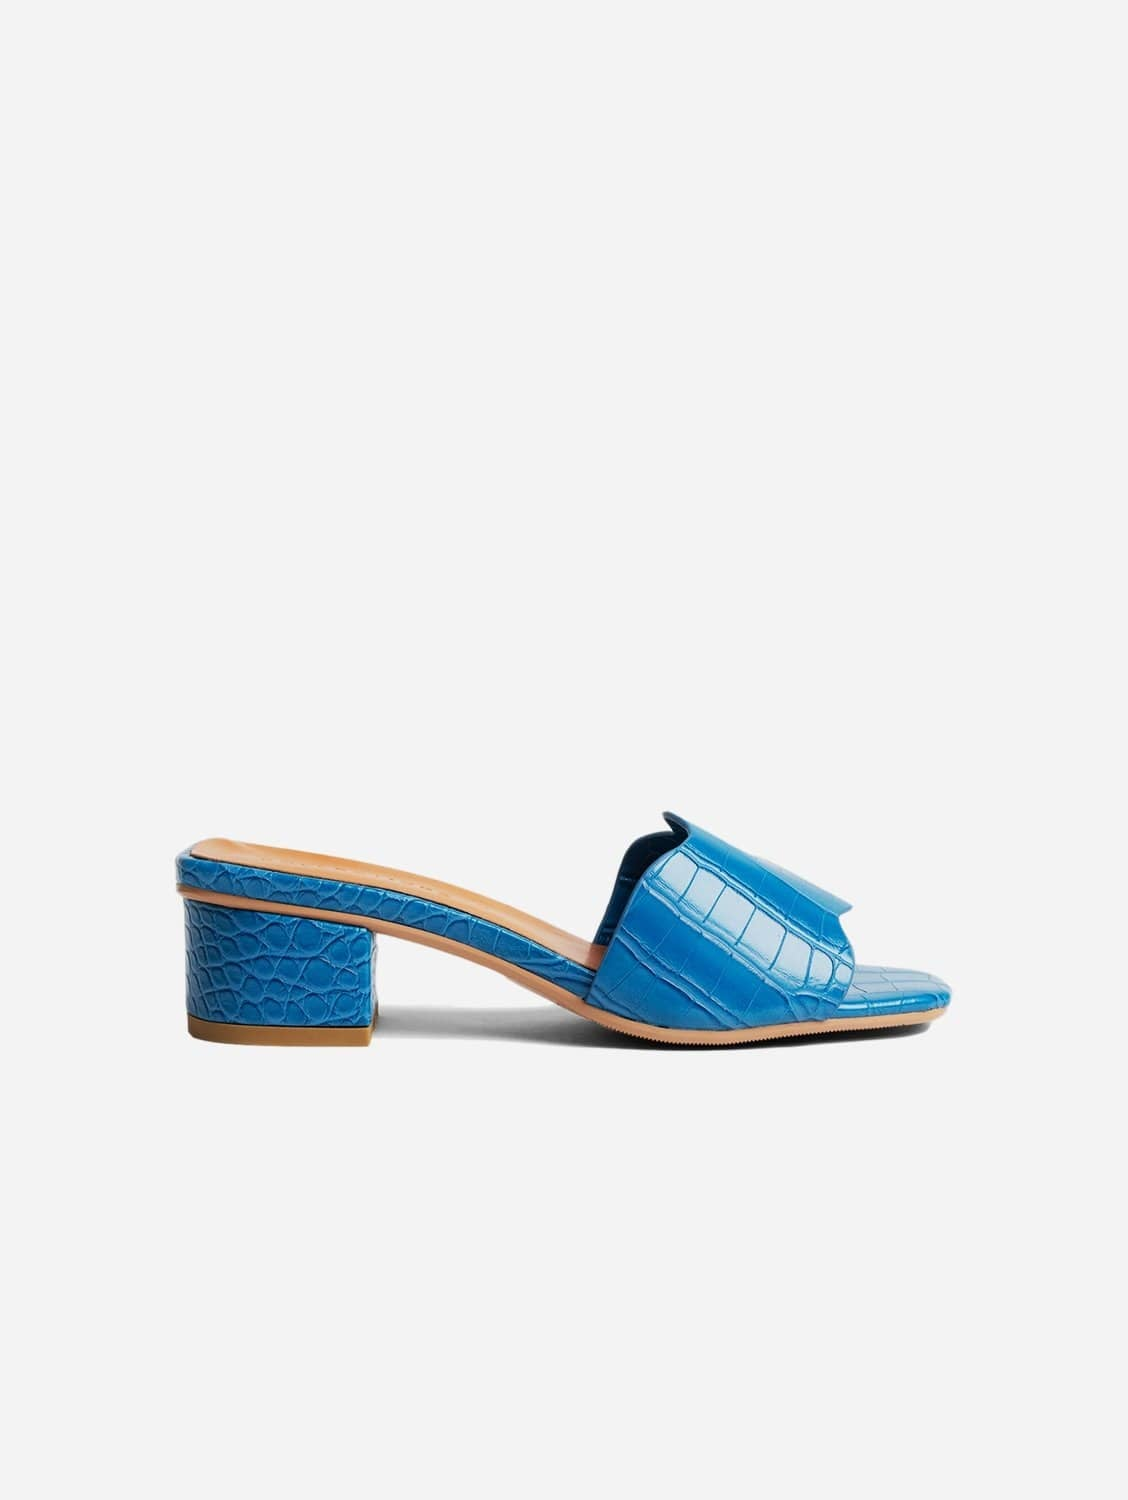 Kitty Up-Cycled Vegan Leather Mule | Blue Croc